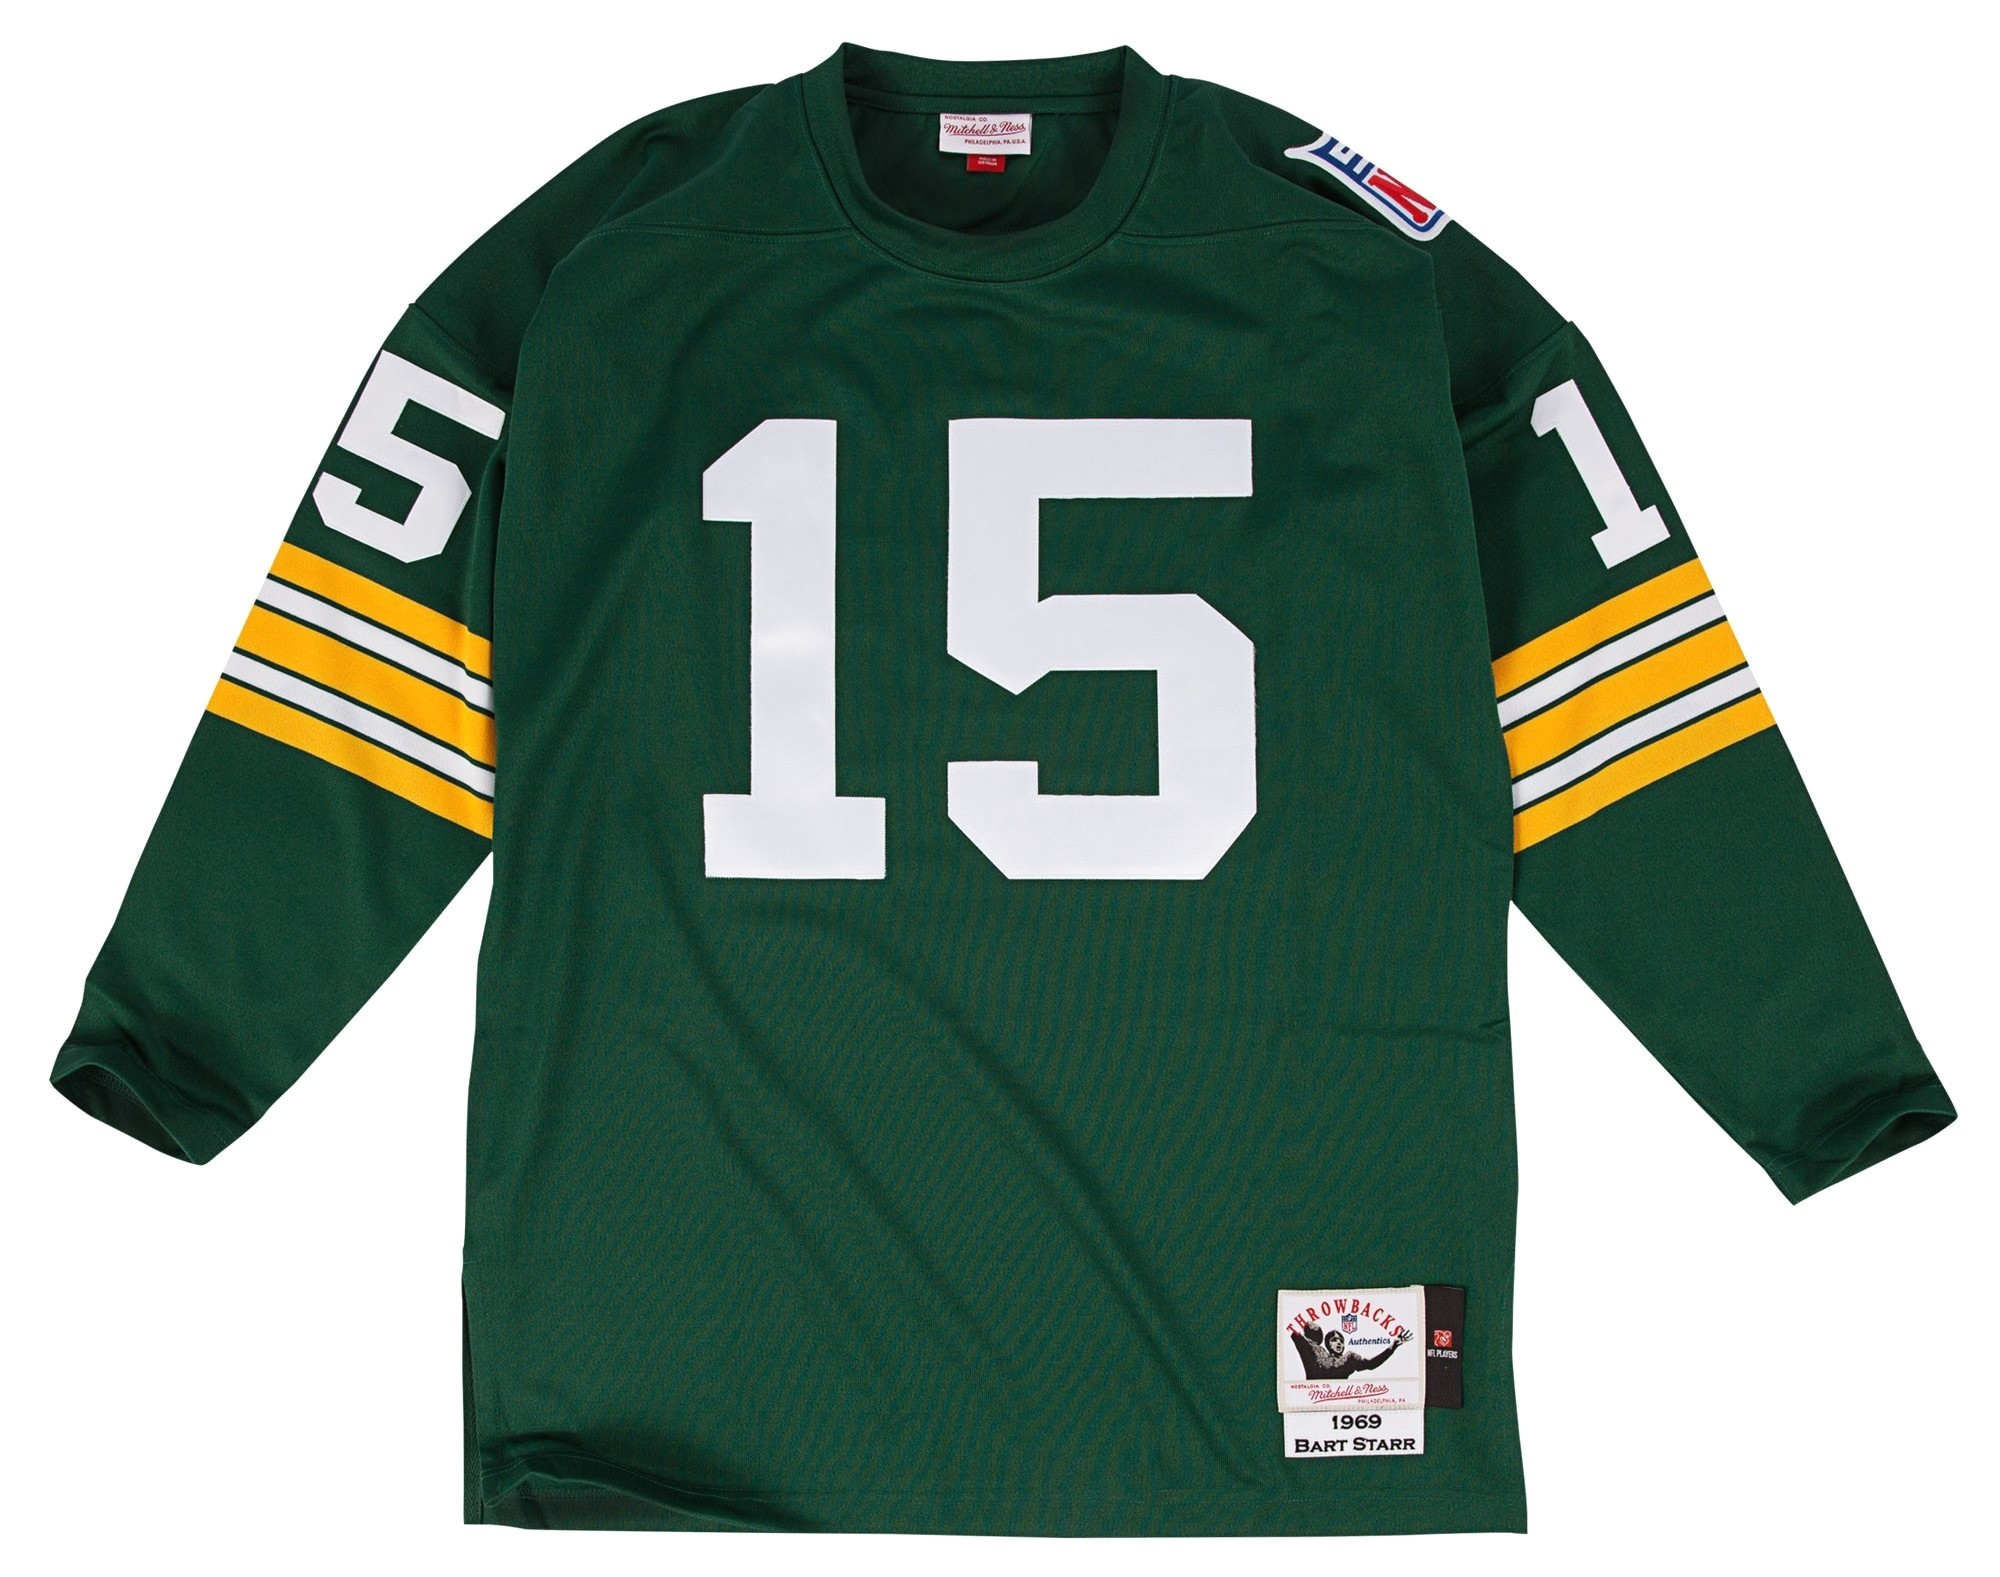 cc9ca7455 Details about Bart Starr Green Bay Packers Mitchell   Ness Authentic 1969  Green NFL Jersey